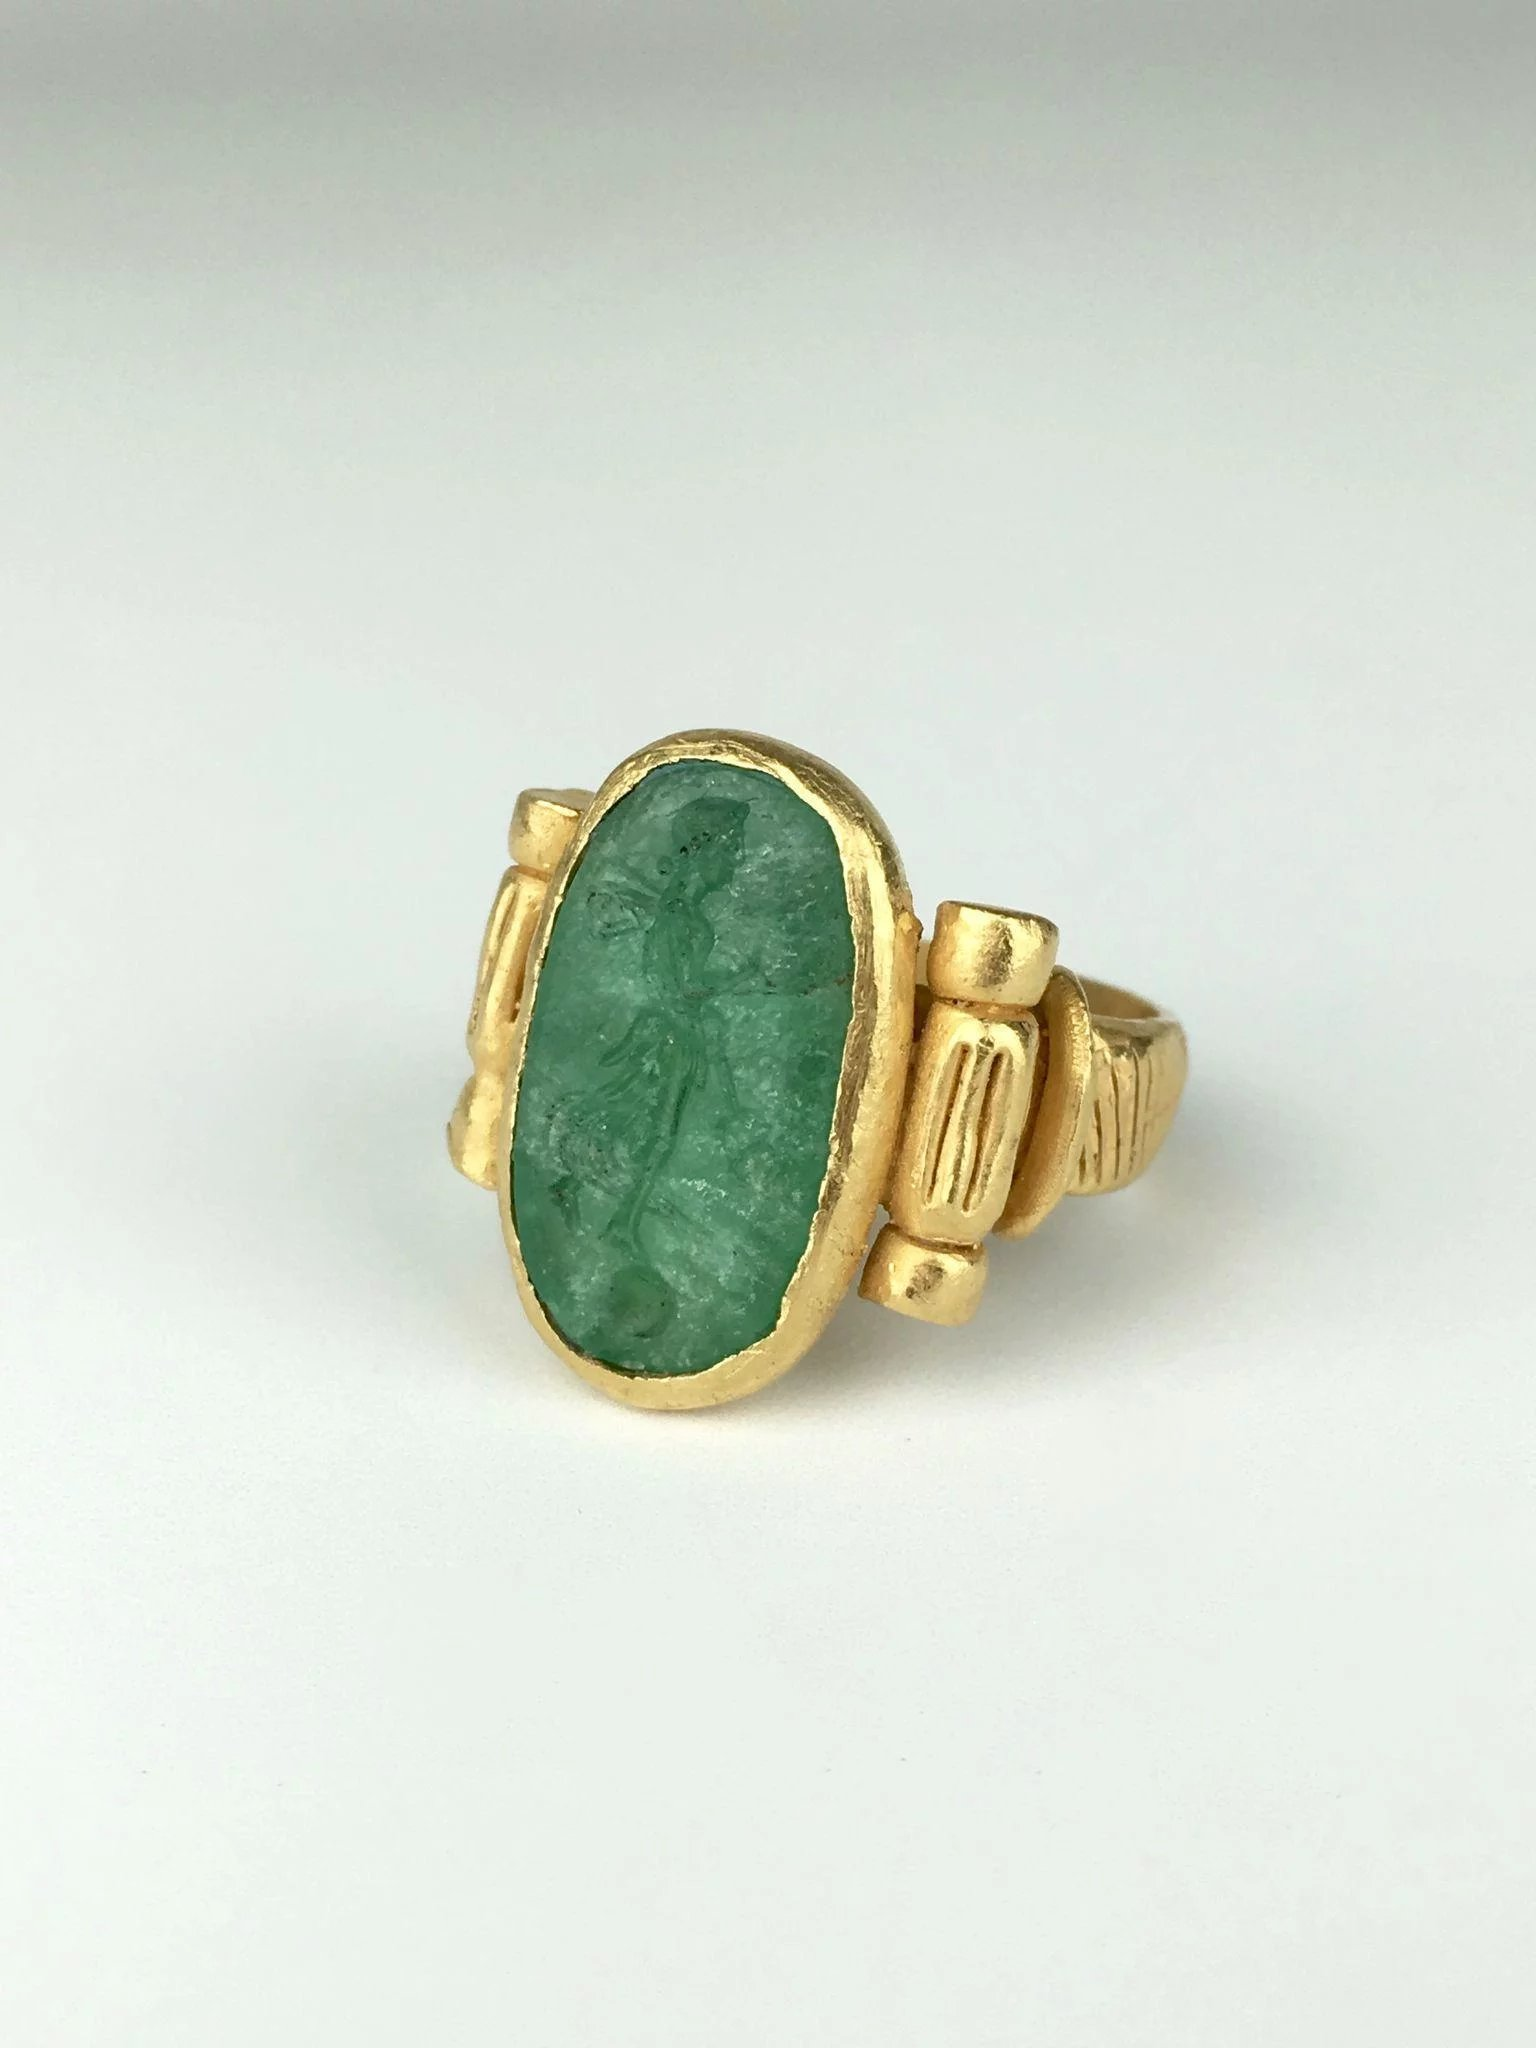 22K Green Beryl Emerald Intaglio Ring of the Goddess Psyche : Park ...